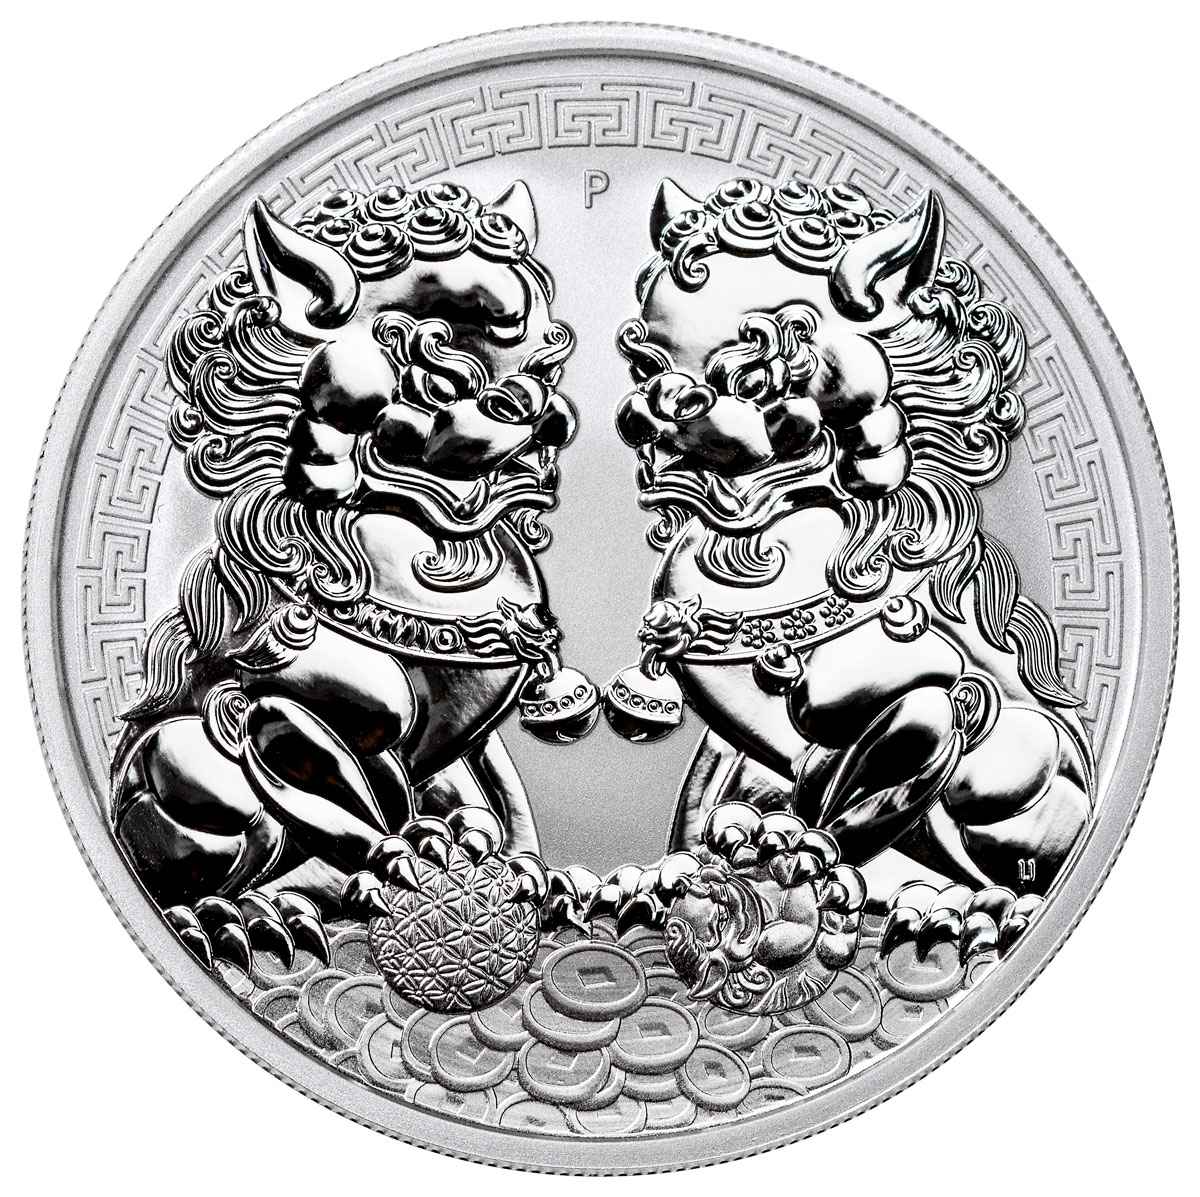 2020-P Australia Double Pixiu Forbidden City Imperial Lion 1 oz Silver $1 Coin GEM BU